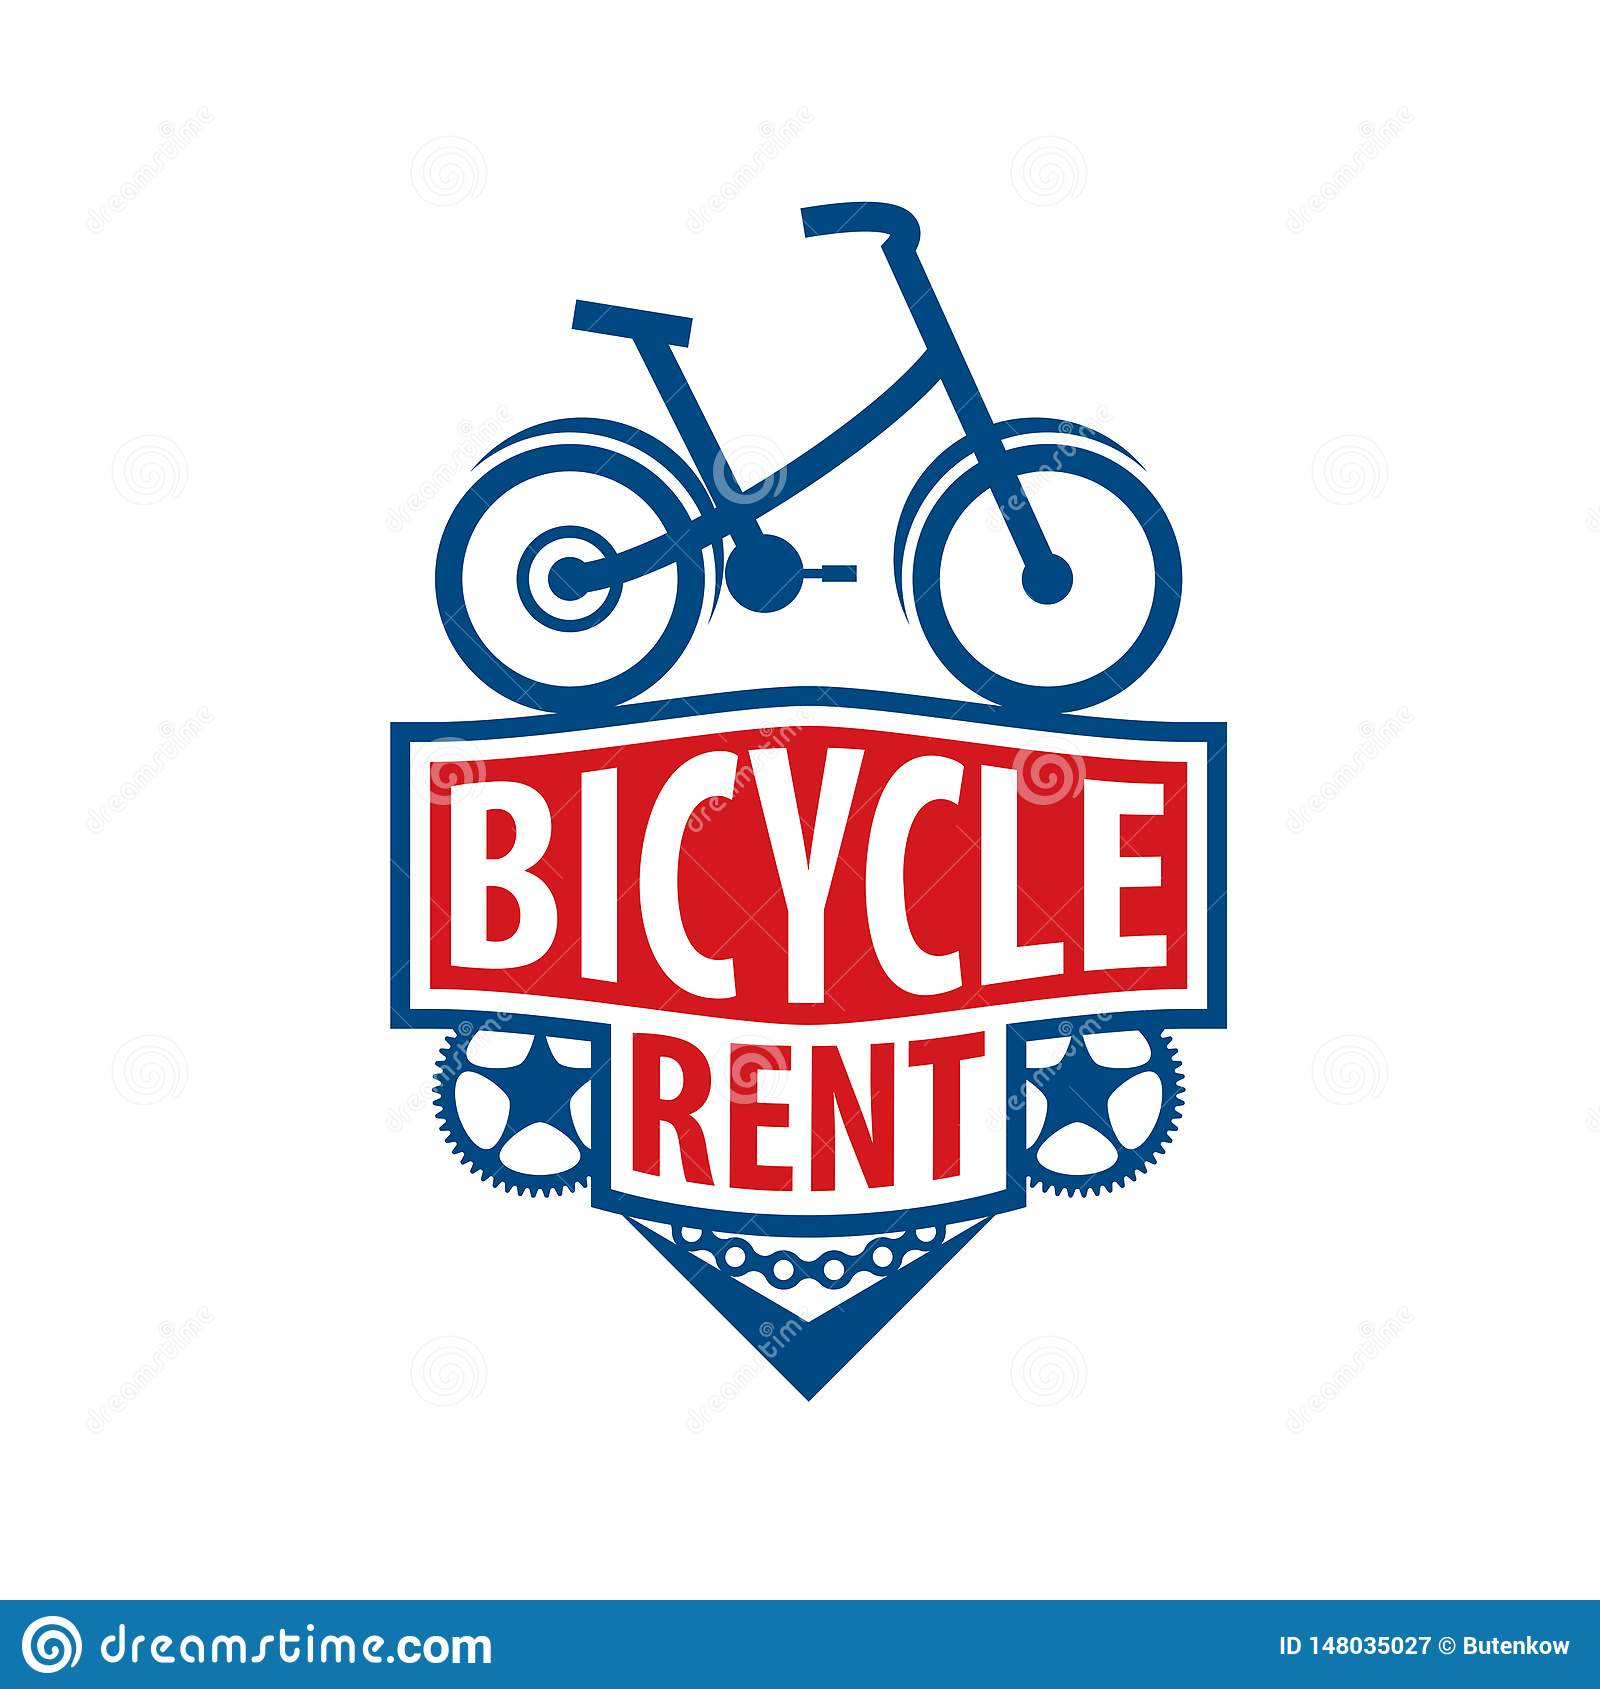 Logo for Bicycle rental. Vector illustration on white background